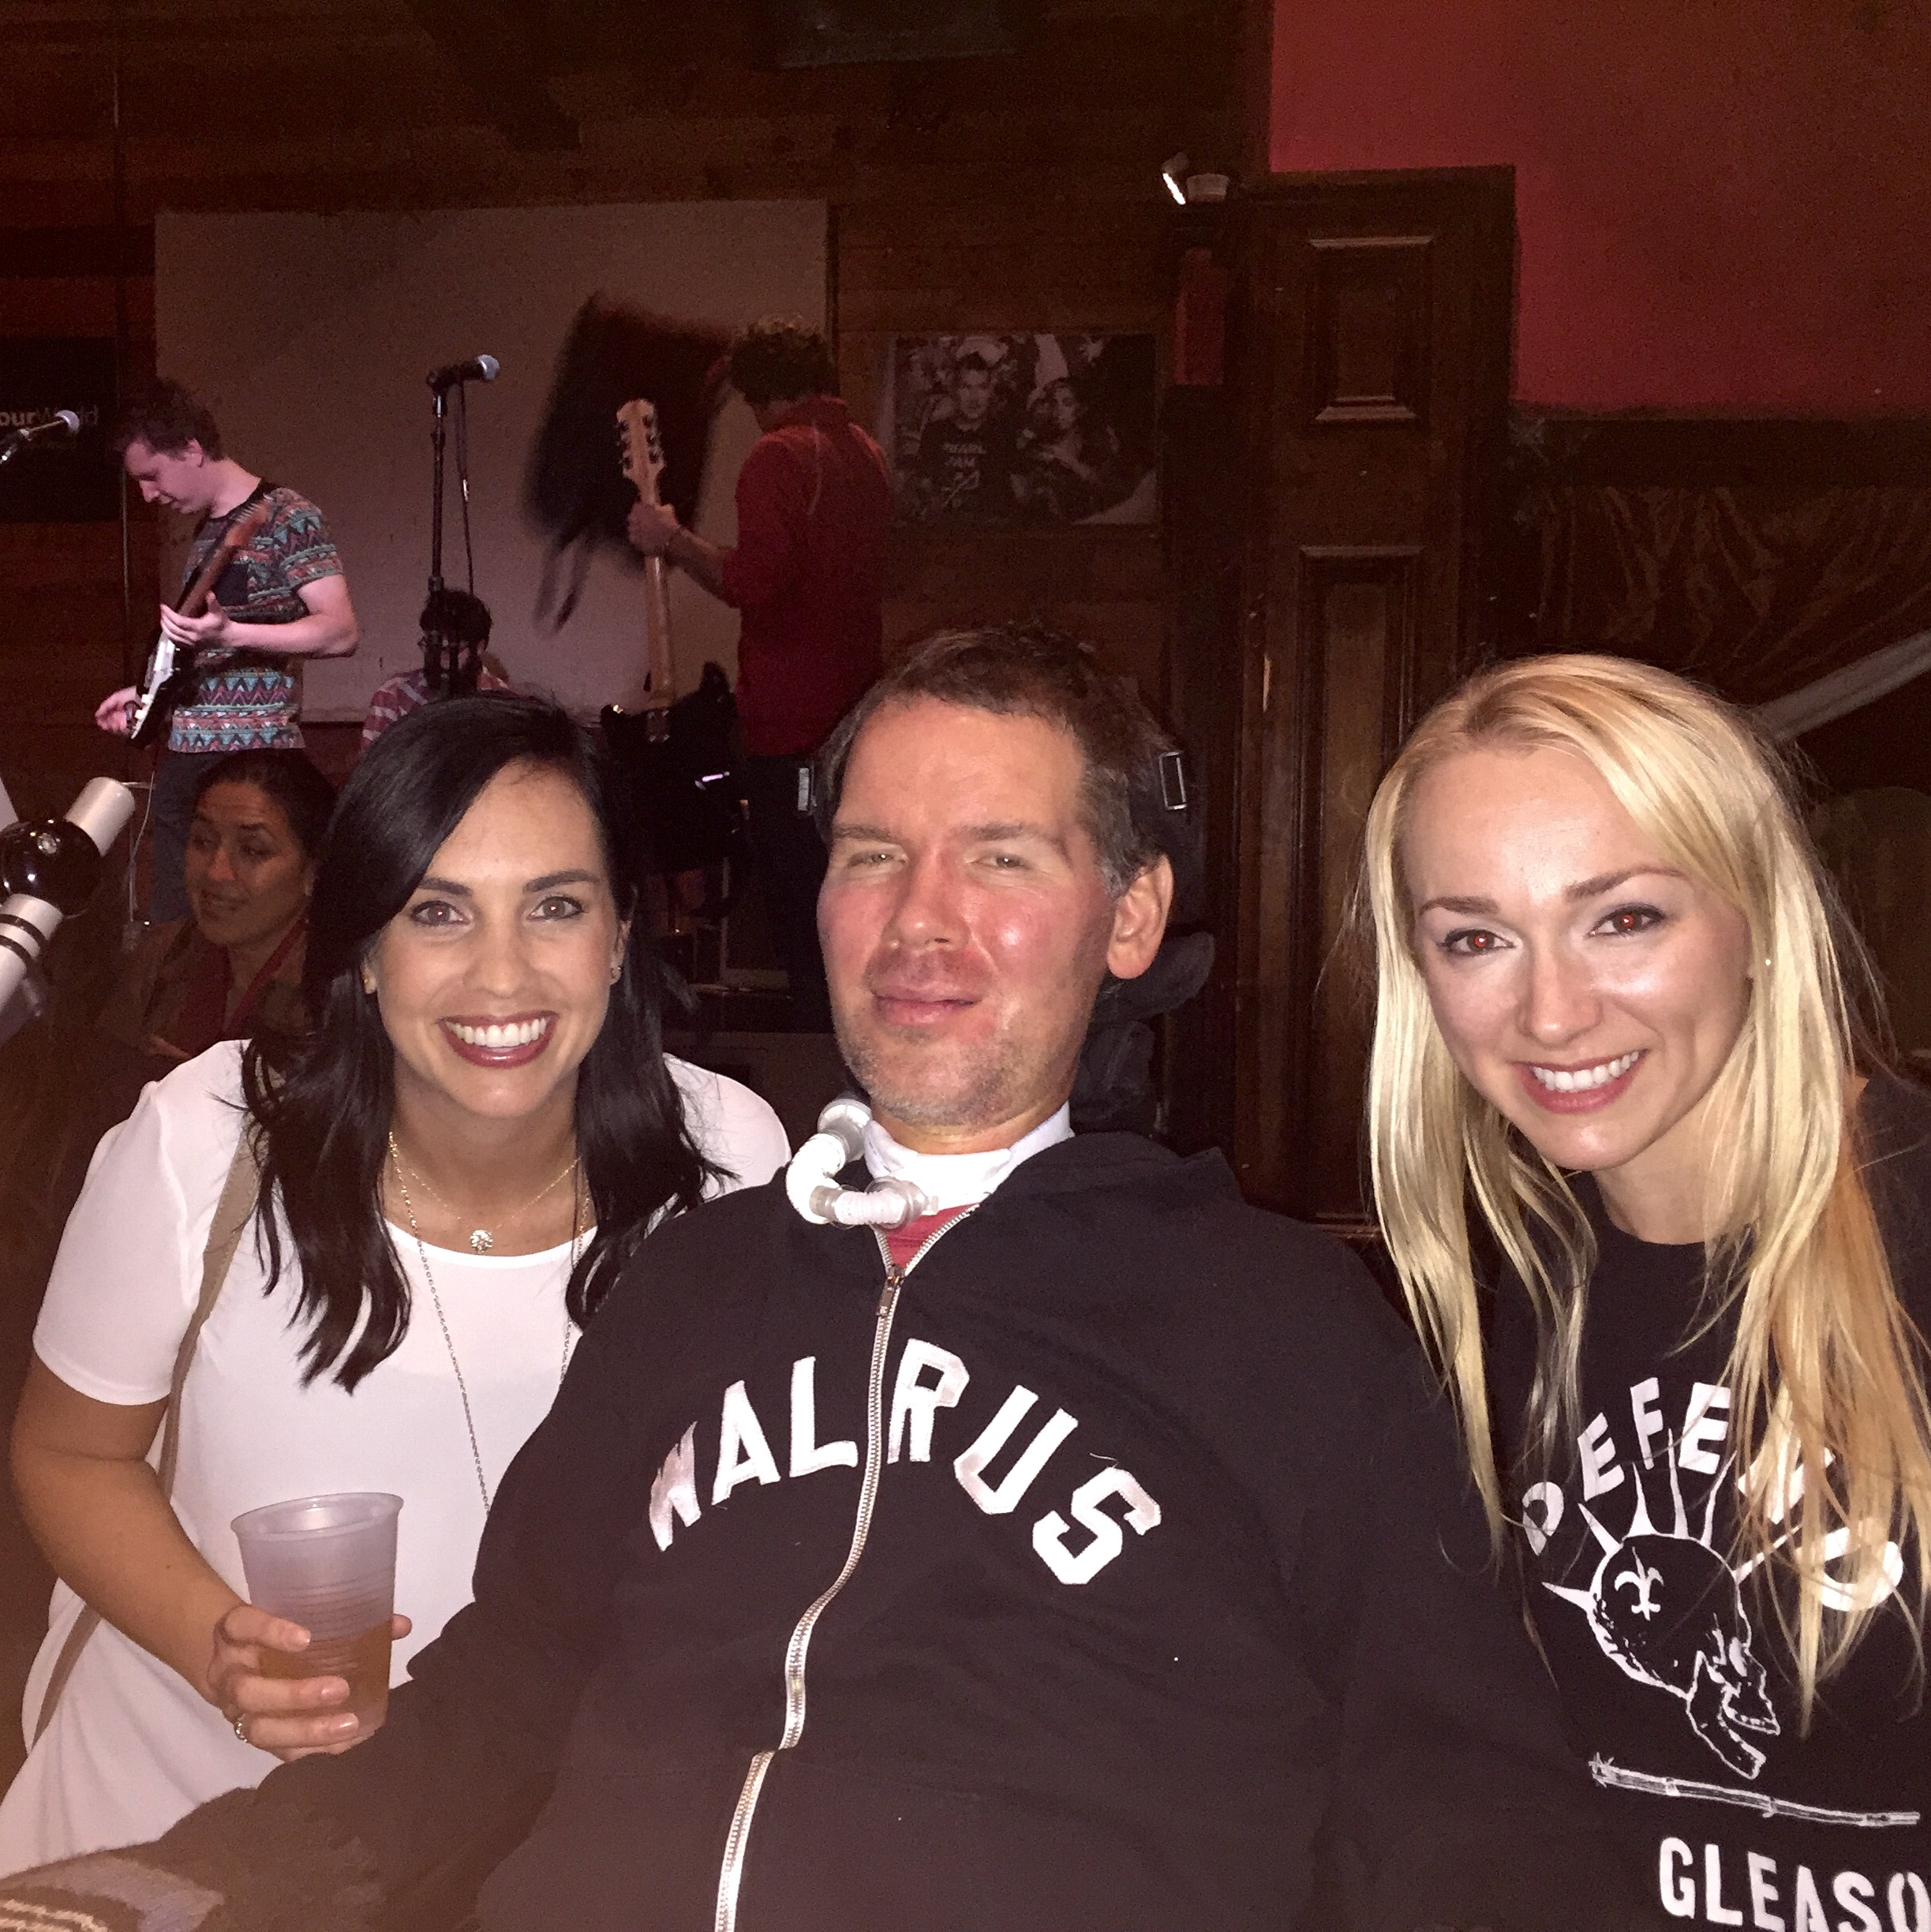 Lauren Bowman and Steve Gleason... an old friend and a new one.  Team Gleason